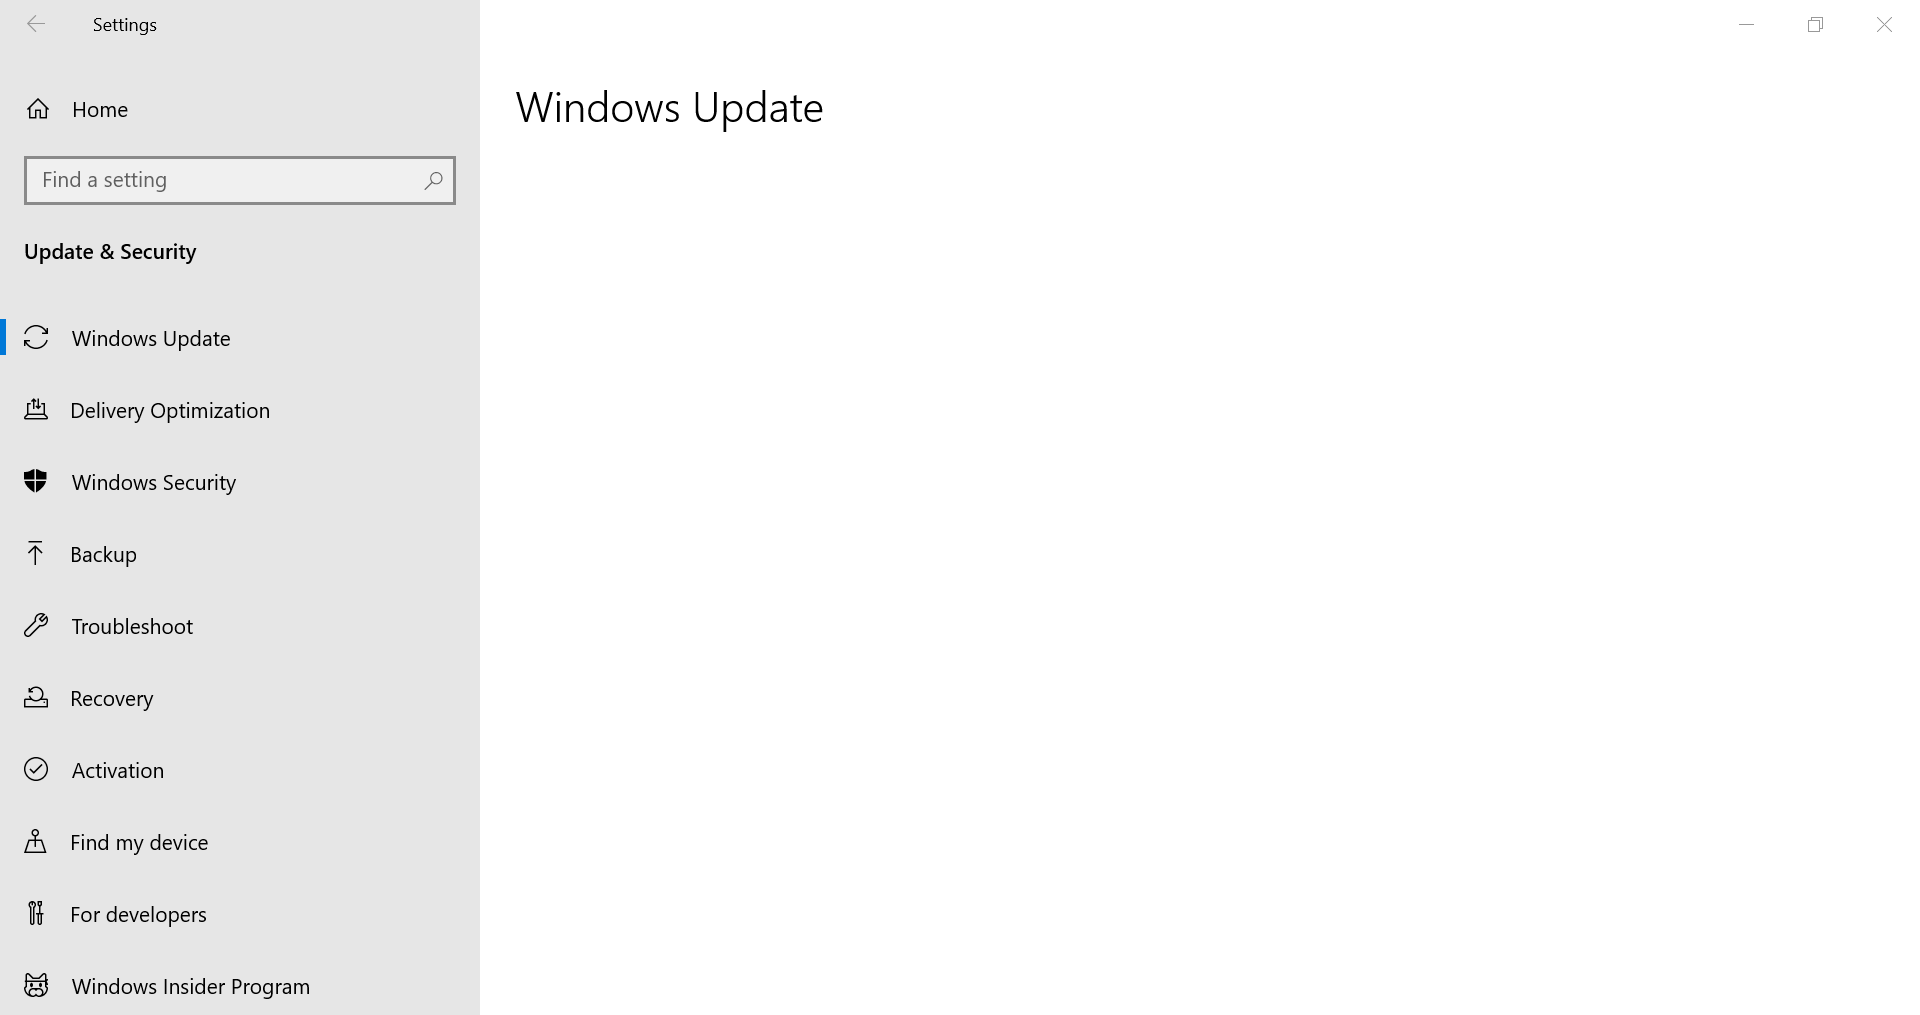 my windows update is not showin anything and stuck forever, pls help !! 66b60e05-9f54-4112-8e24-b4269ee72f20?upload=true.png